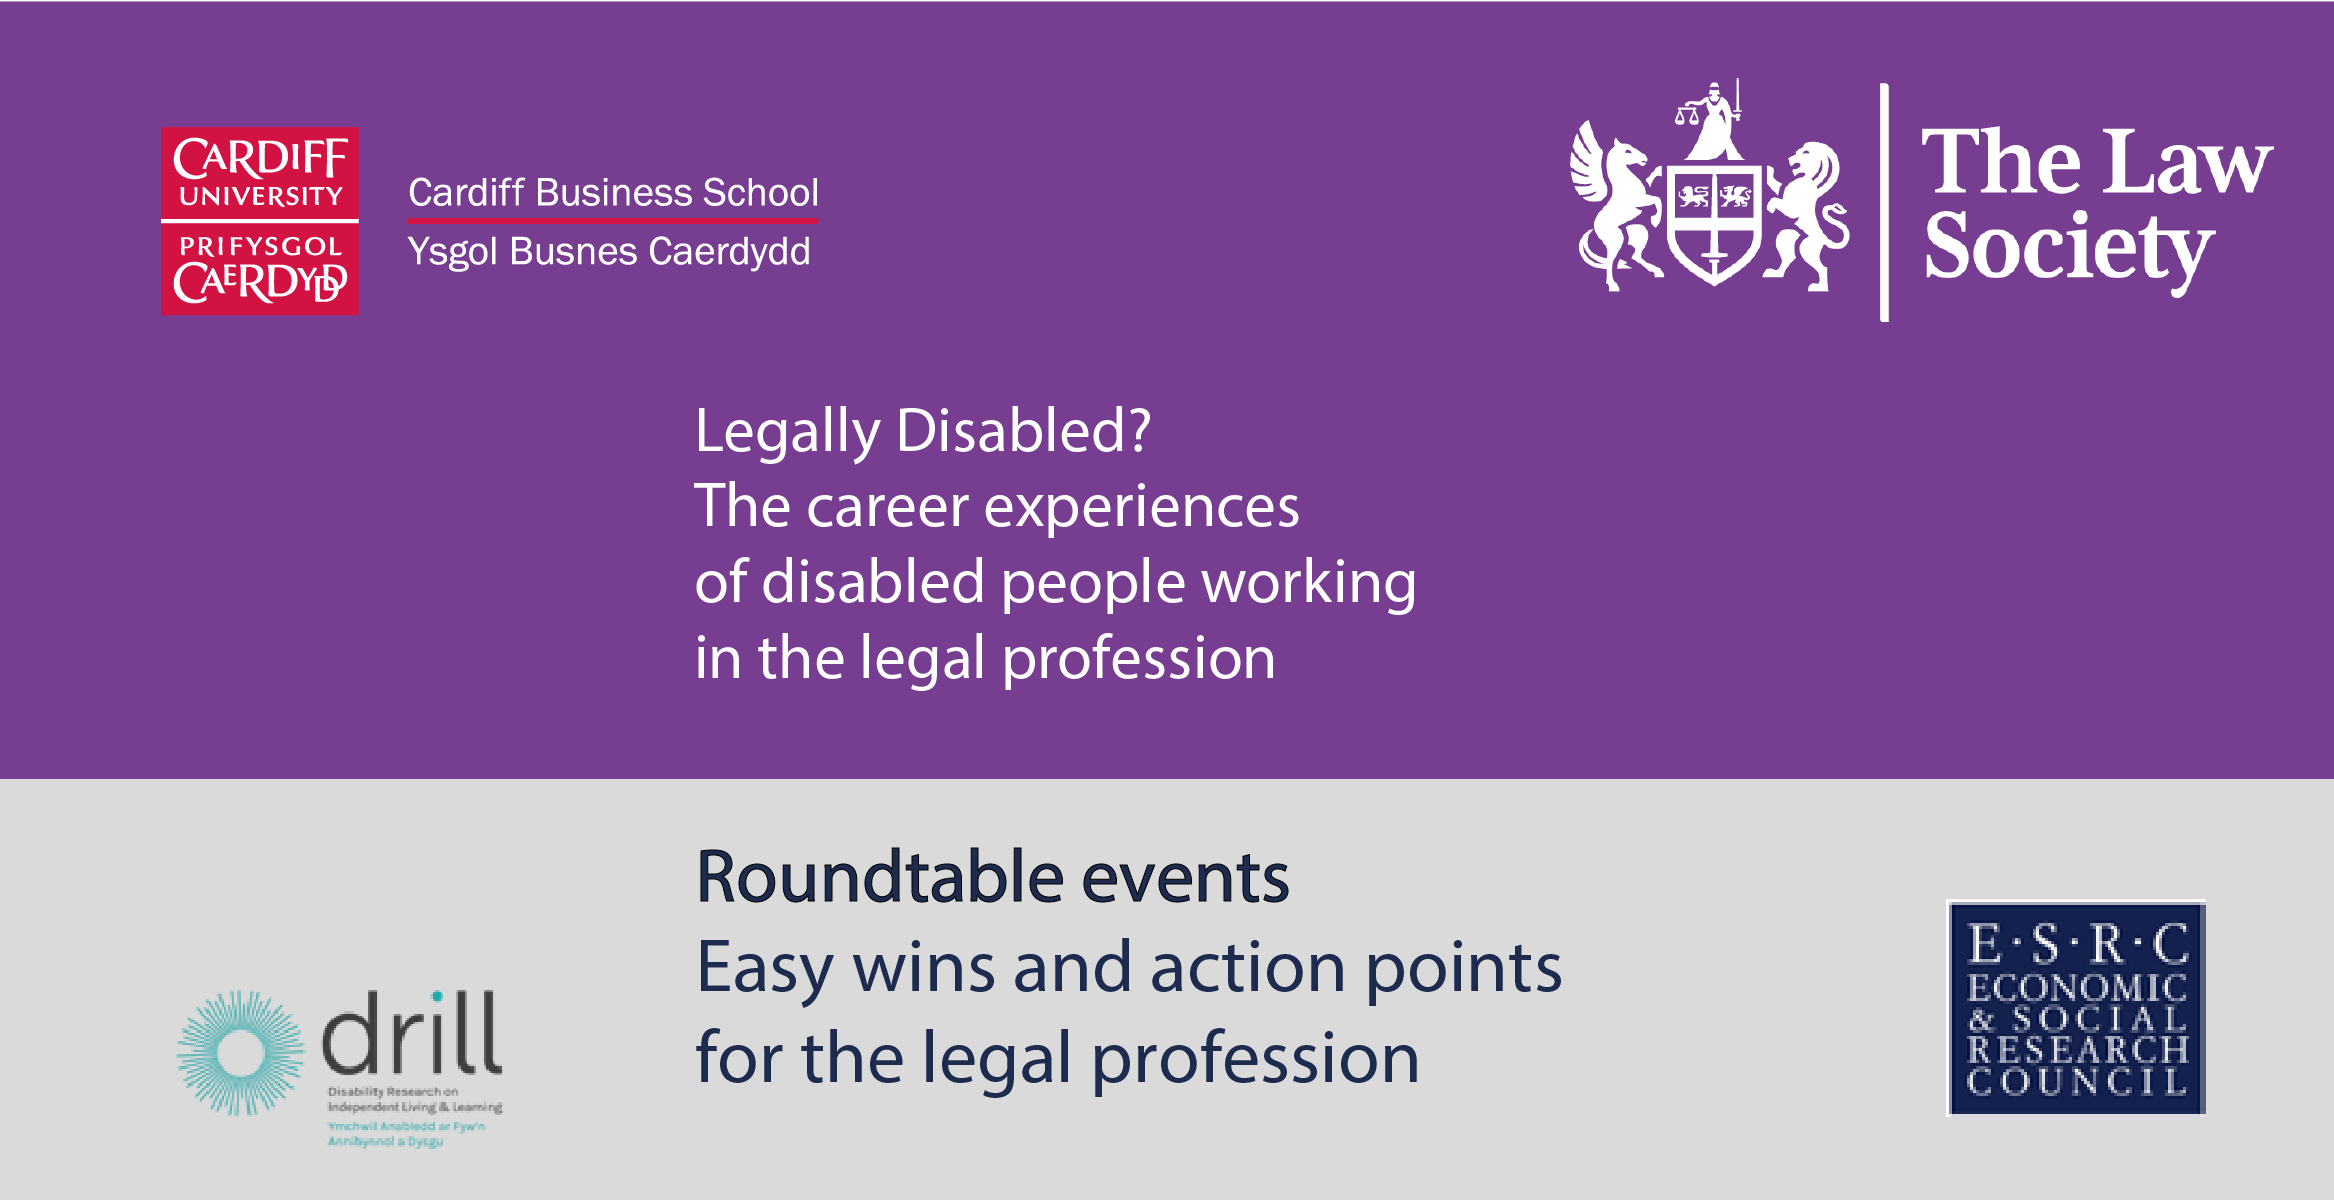 legally disabled roundtable events easy wins and action points for the legal profession